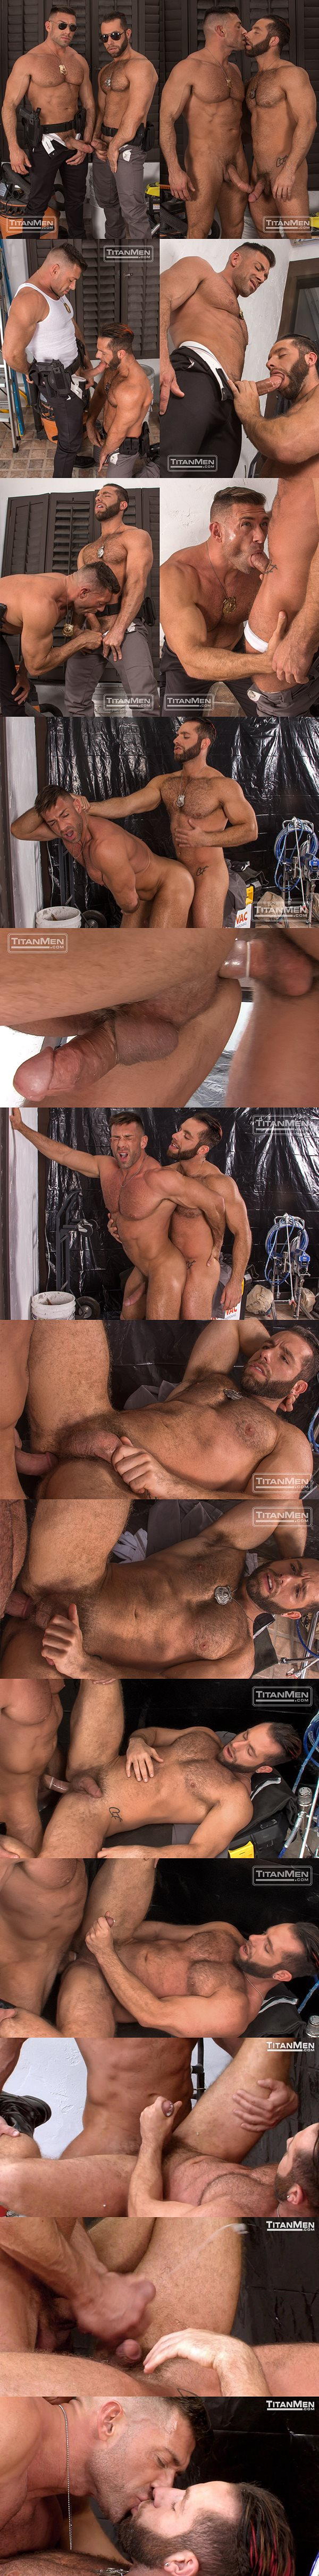 Handsome muscle hunk Bruce Beckham flip-fucks beefy hairy stud Eddy Ceetee in Parole at Titanmen 02